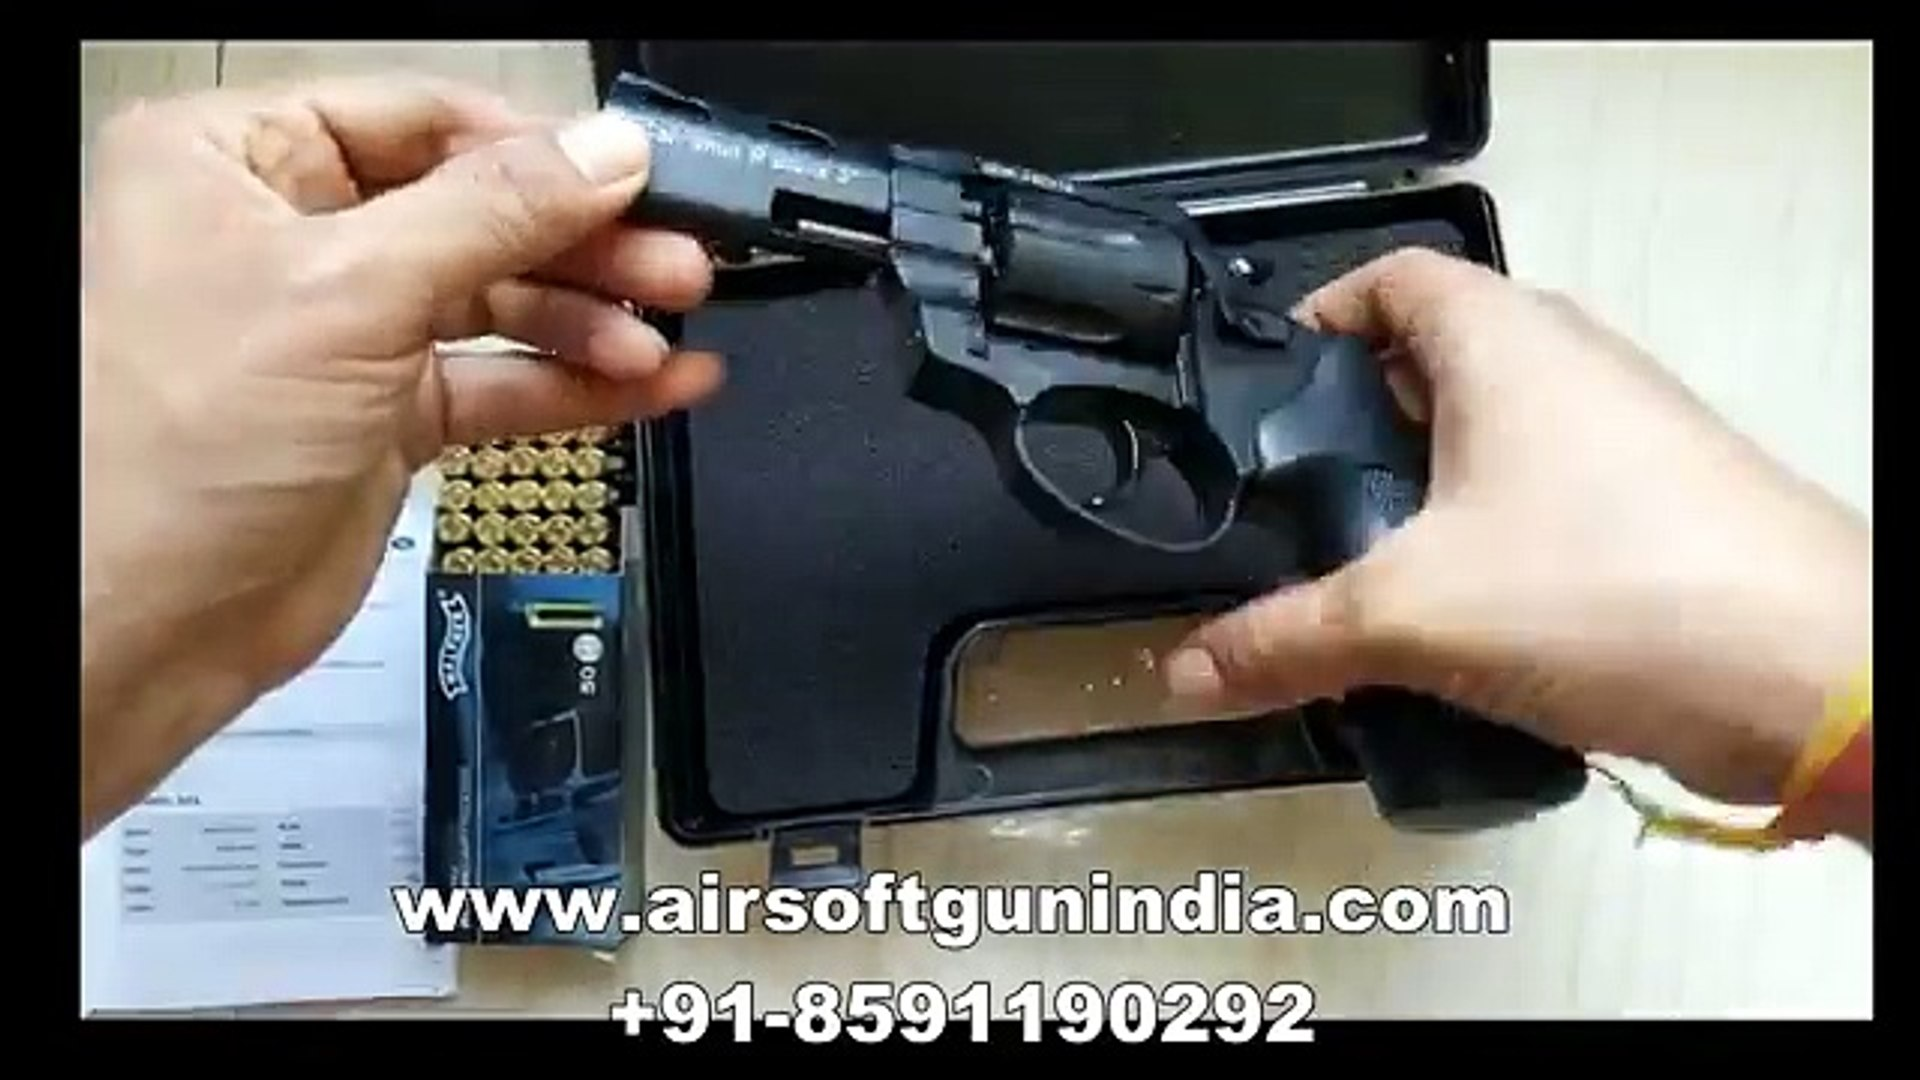 ZORAKI R2 9mm blank revolver by airsoft gun india